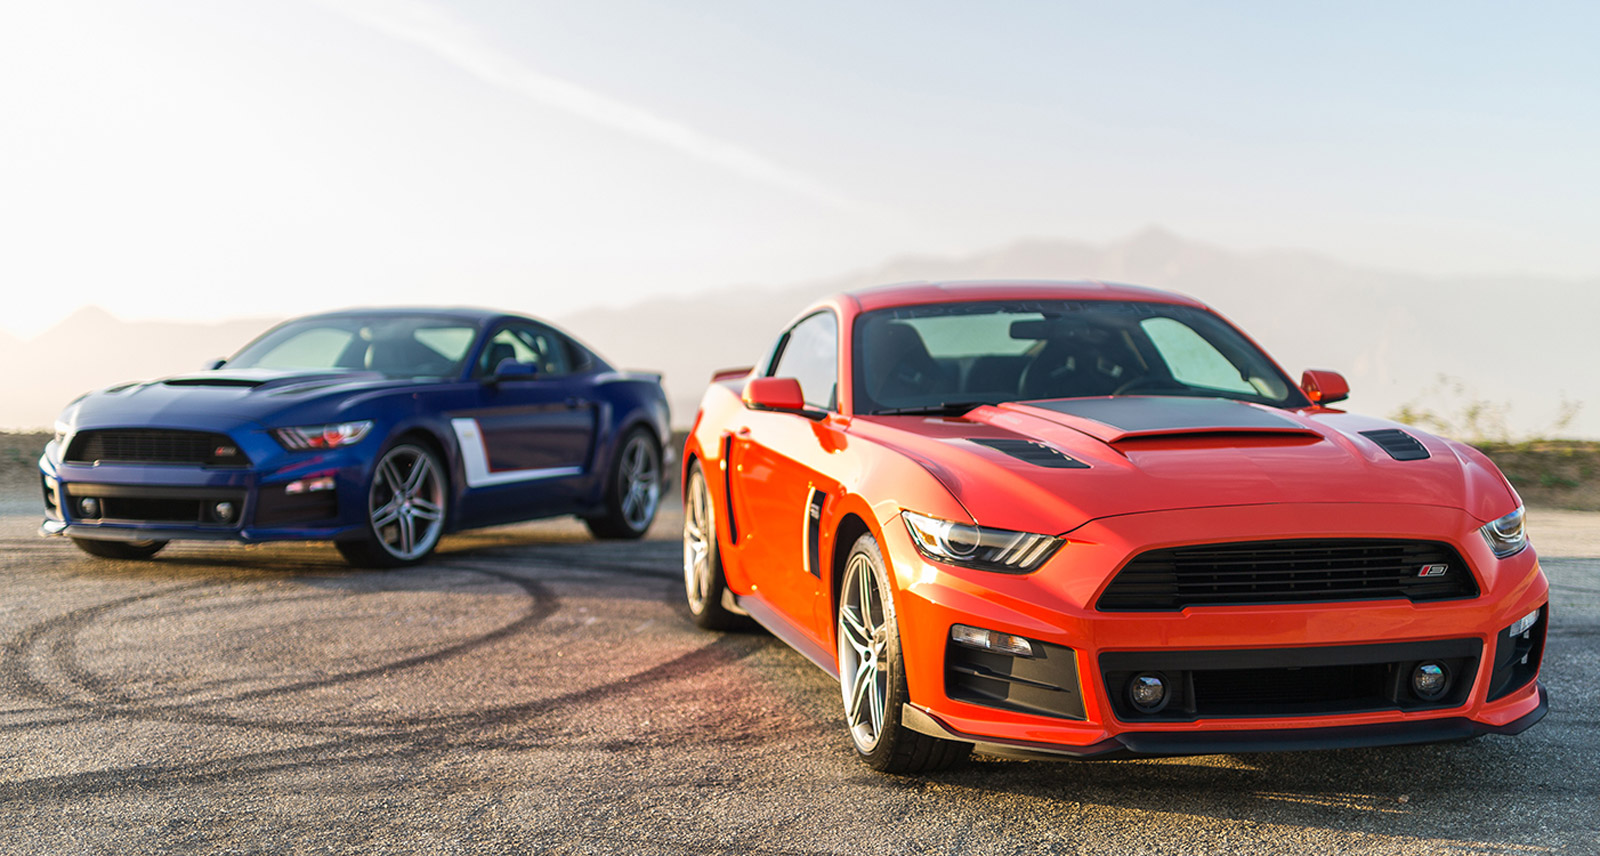 2015 Roush Rs3 Mustang Delivers 670 Hp And 545 Lb Ft Video